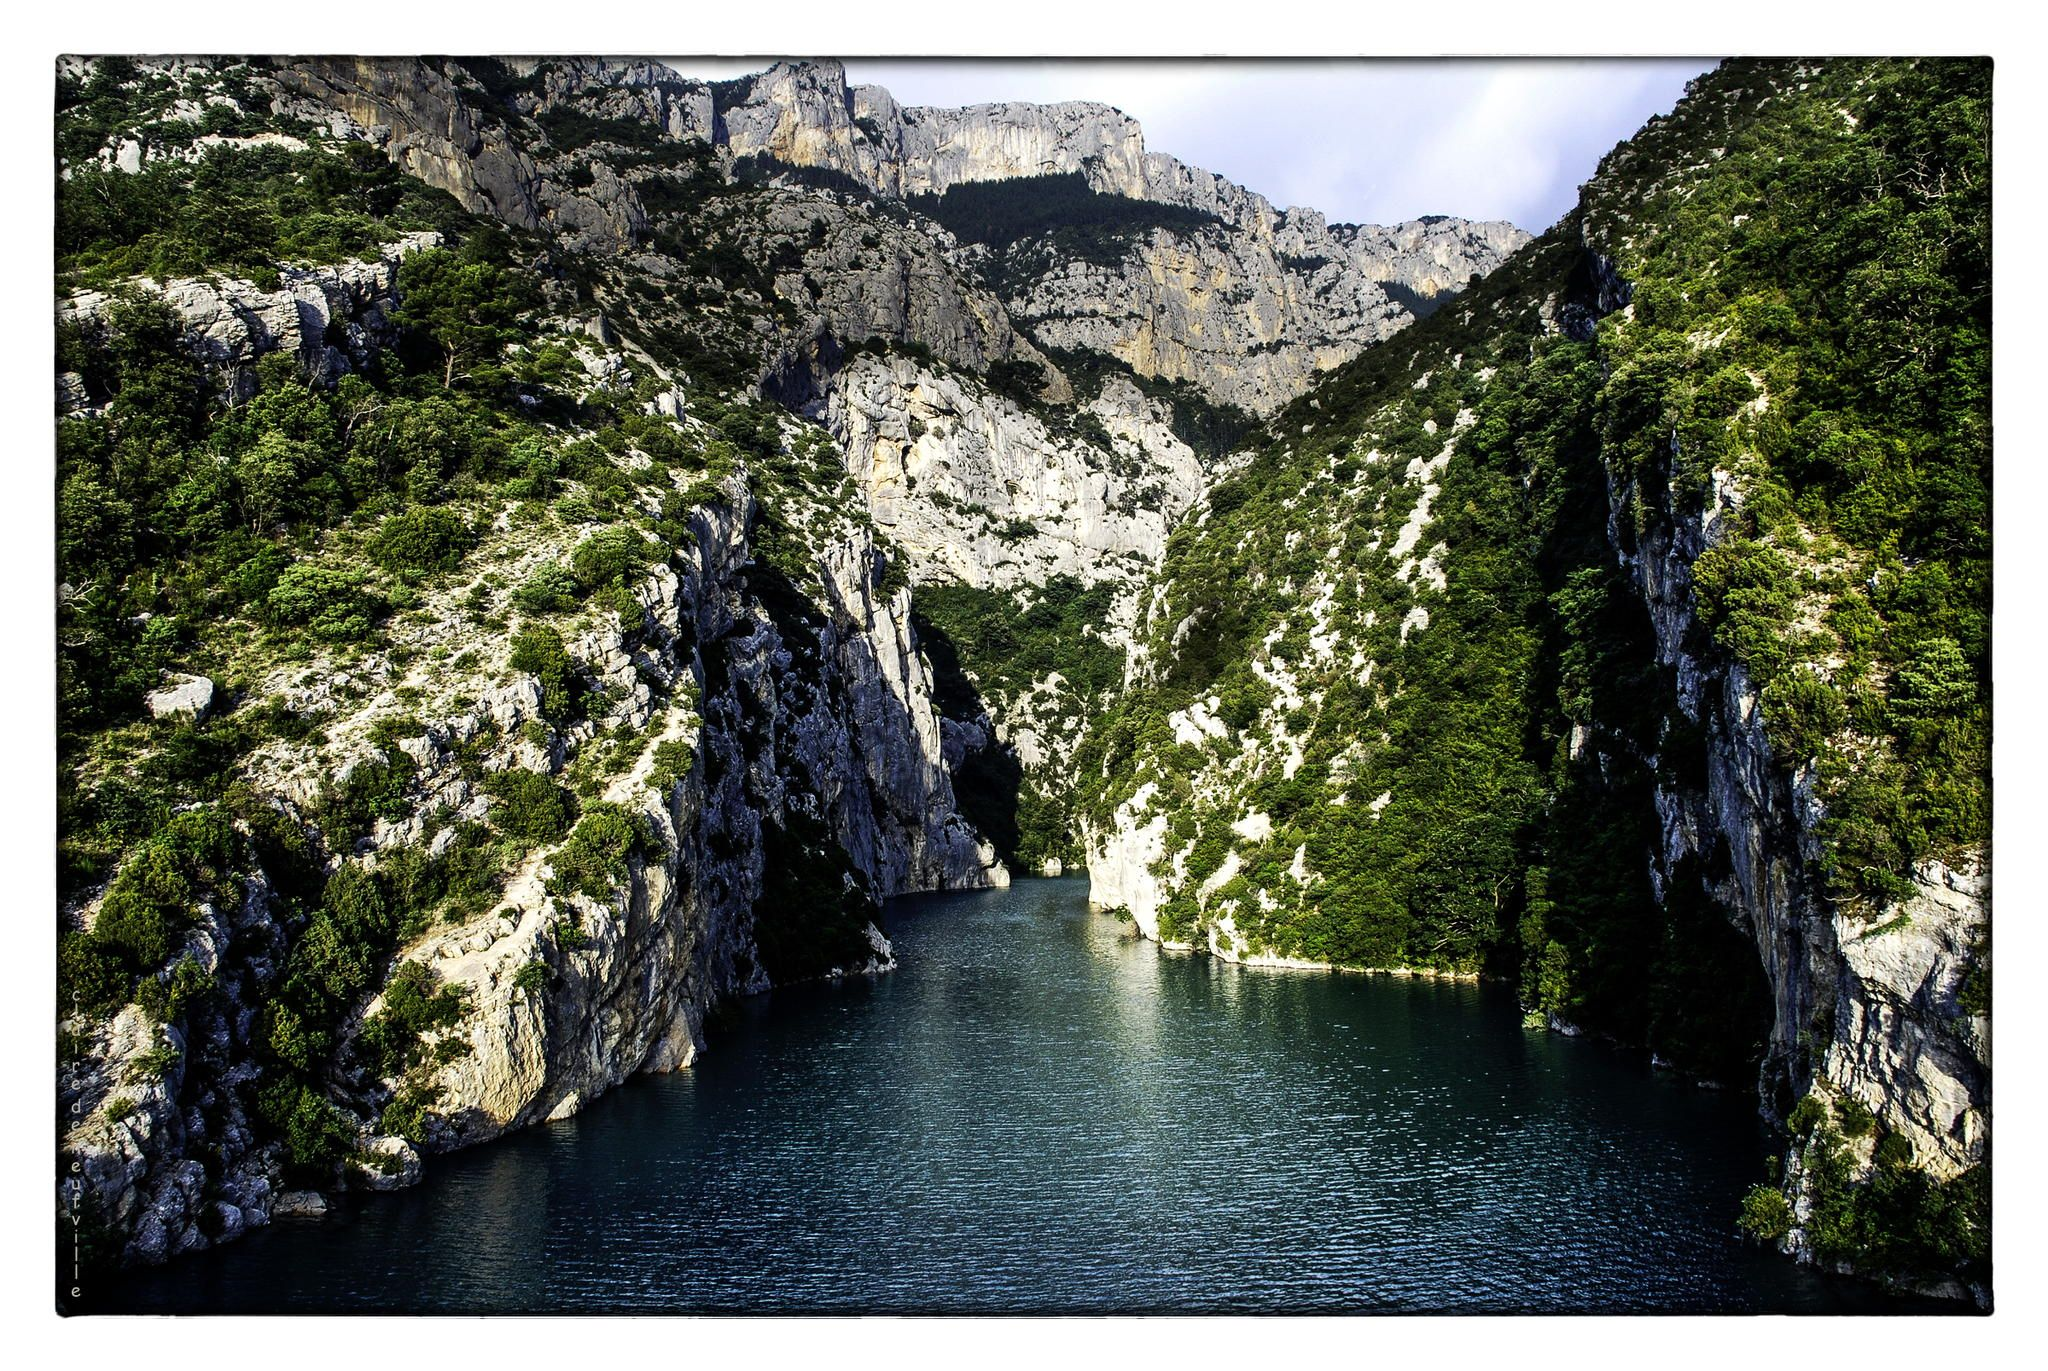 Verdon river's Gorge in Alpes-de-Haute-Provence, South Eastern France